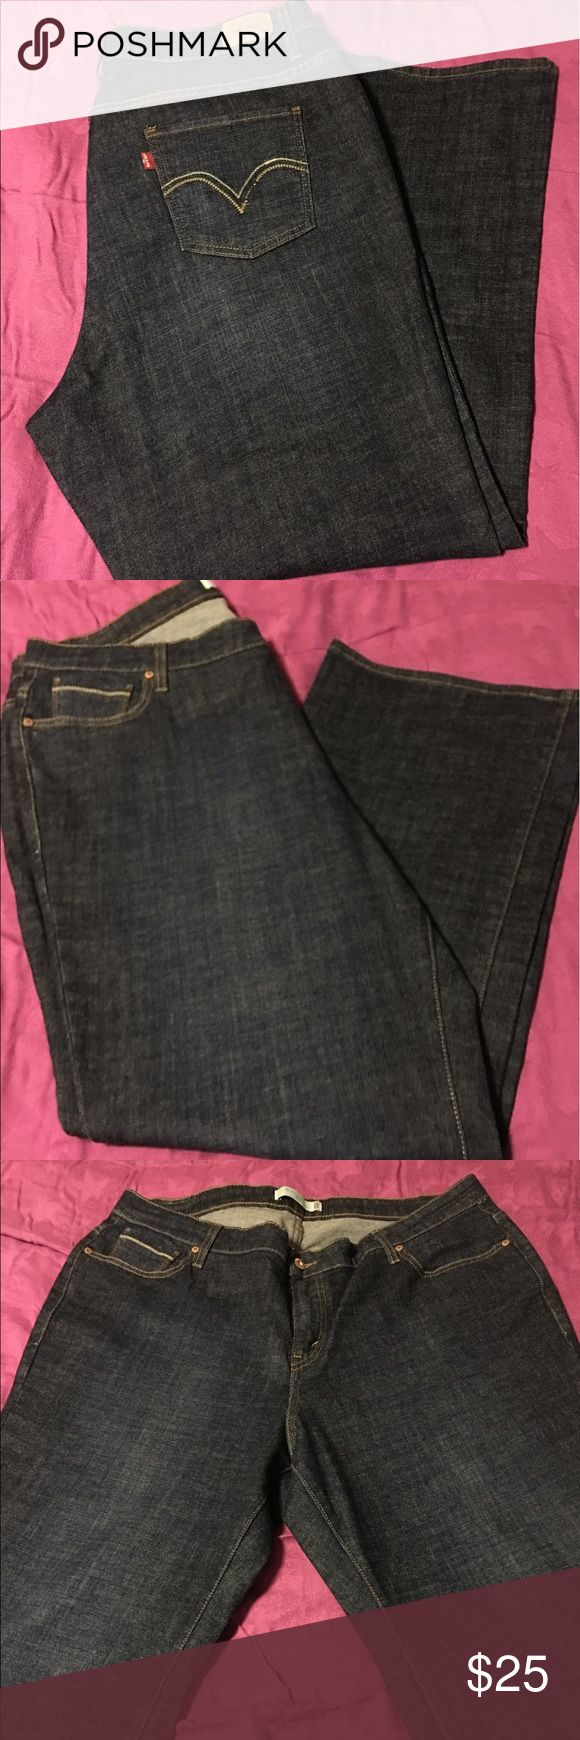 EEUC Levi's 508 Plus Size Boot Cut Jeans - 20W EEUC Levi's 508 Plus Size Boot Cut Jeans - 20W These jeans are in excellent condition.  I can only remember wearing them 2 times.  The wash is a beautiful dark blue that Levi's calls Storm Rider.  They are a 20W short.  Please refer to the chart from Levi's that I have attached. Levi's Jeans Boot Cut